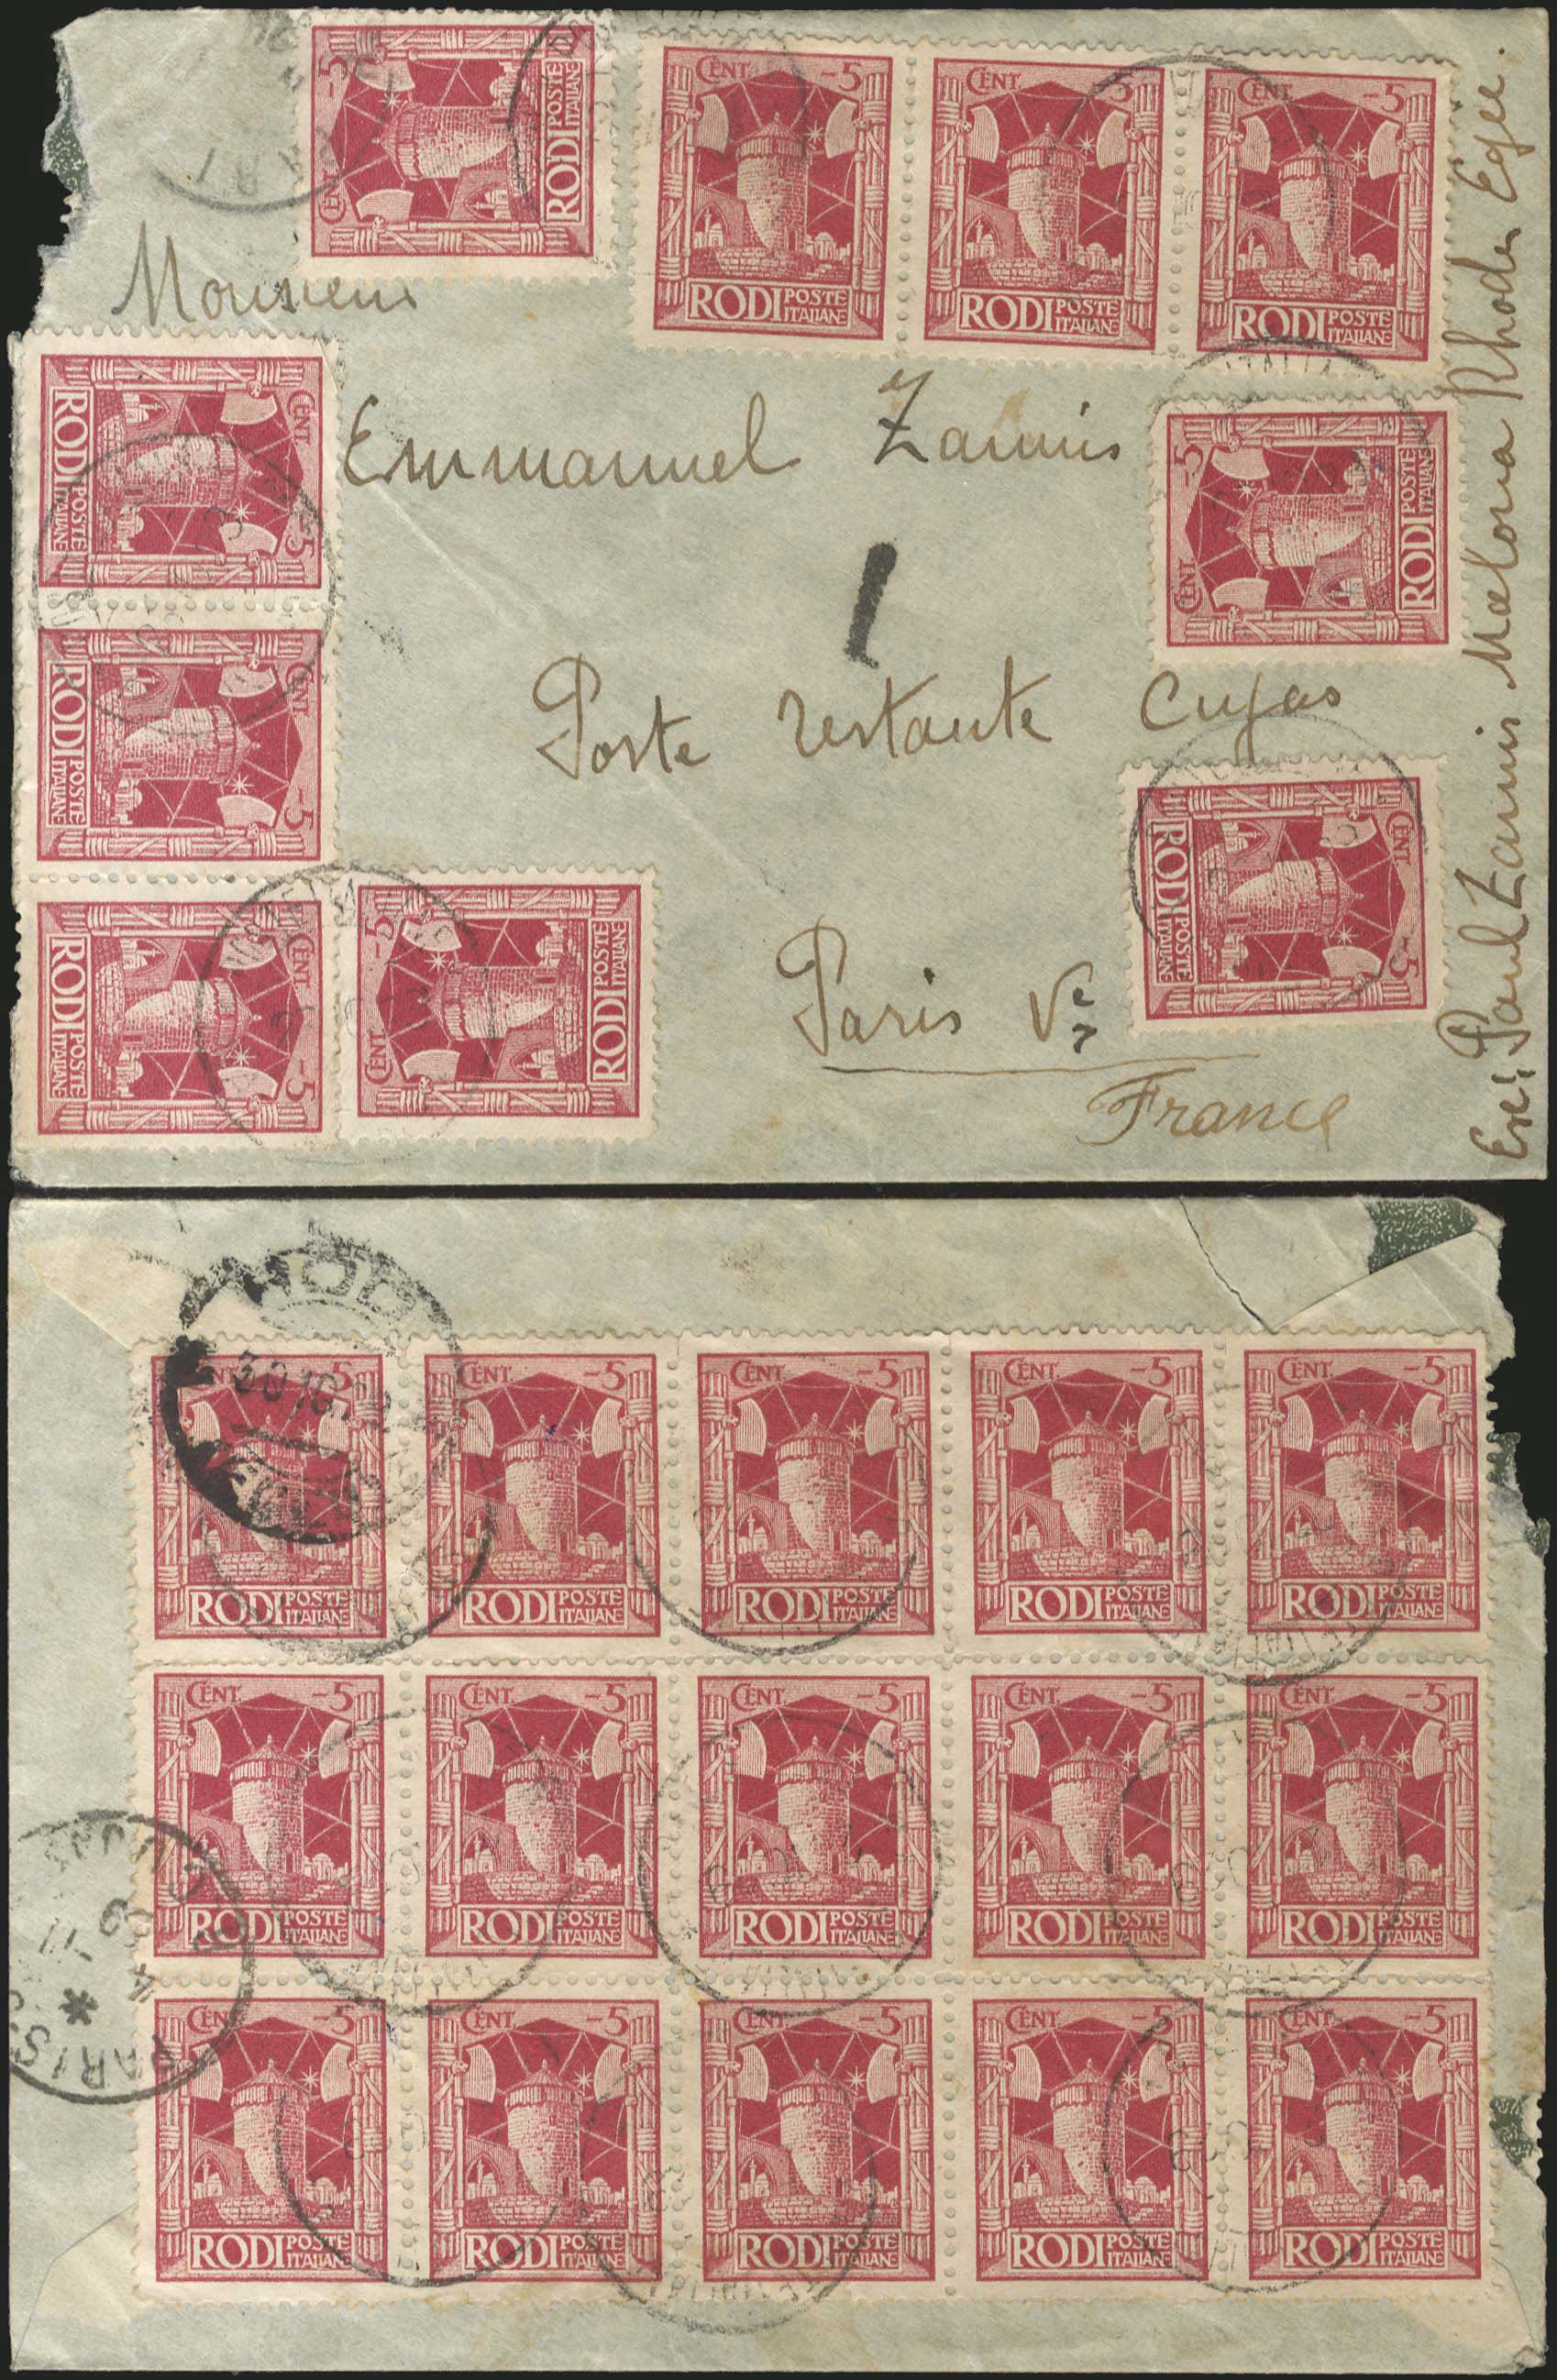 Lot 660 - Dodecanese italian dodecanese - italian post office issues -  A. Karamitsos Postal & Live Internet Auction 680 General Philatelic Auction